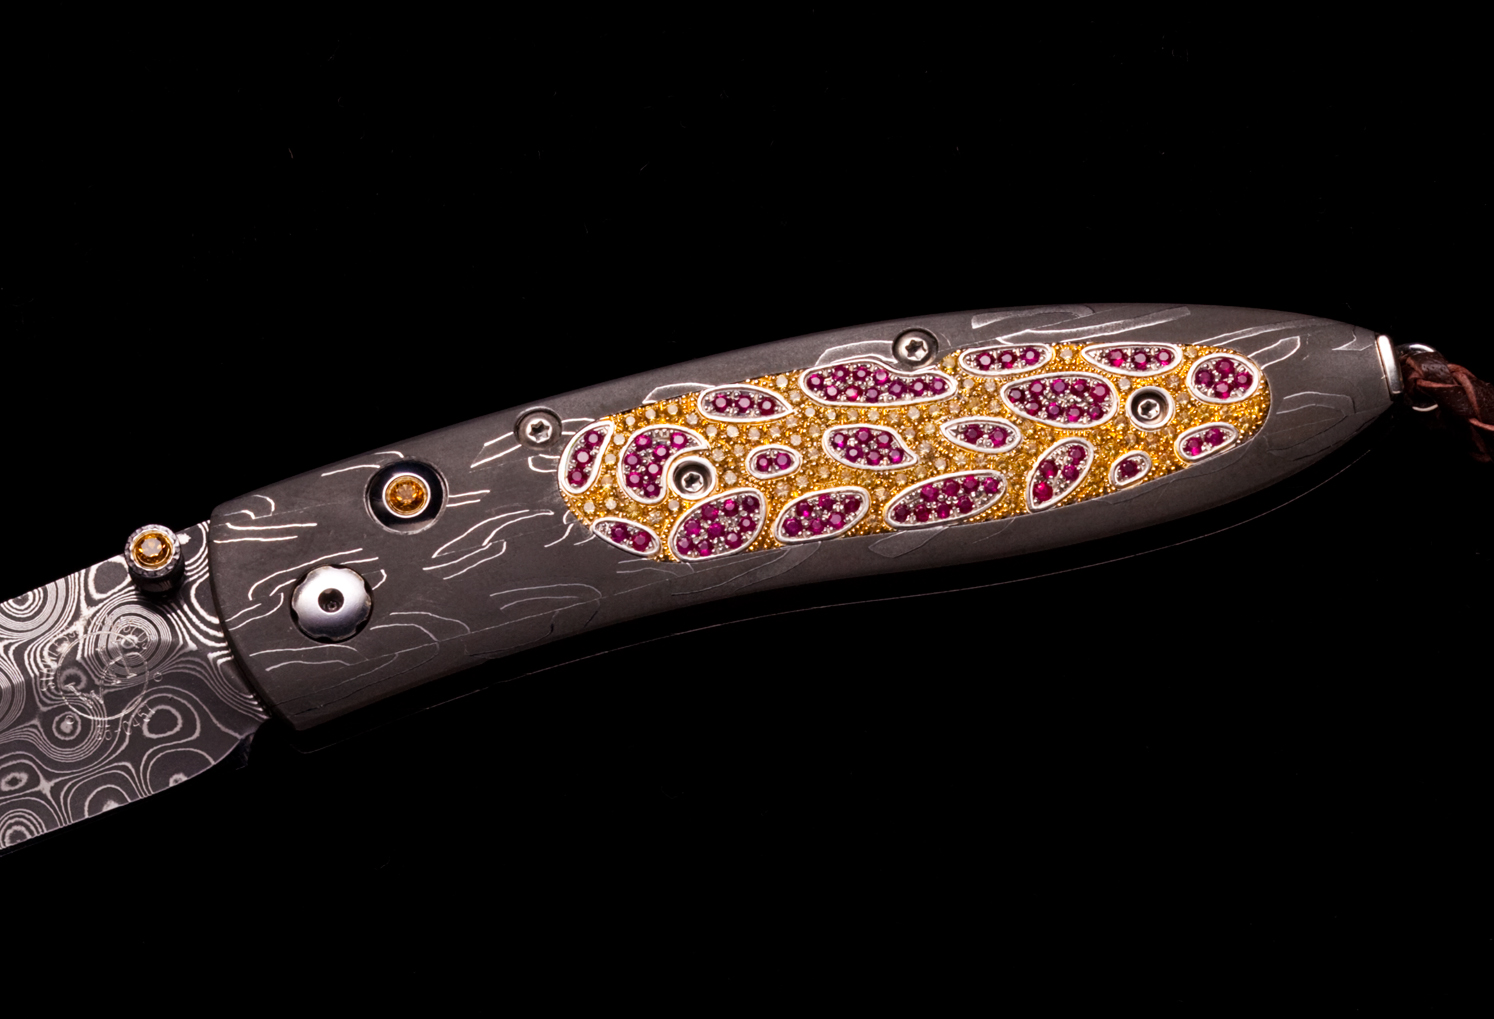 The B05 'Monarch' pocketknife inlaid with a pave of 168 rubies (1.86K) and 158 yellow sapphires (1.607K)